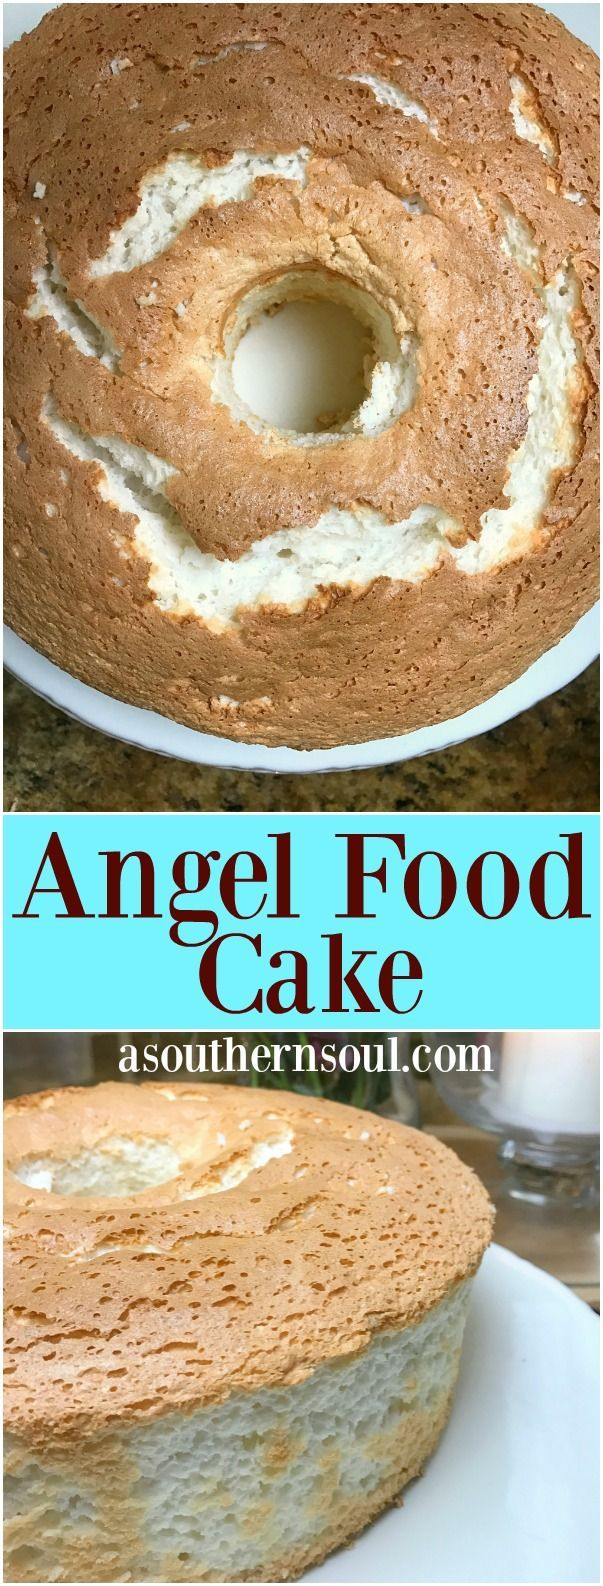 Light, fluffy angel food cake is a family favorite that's easy to make.